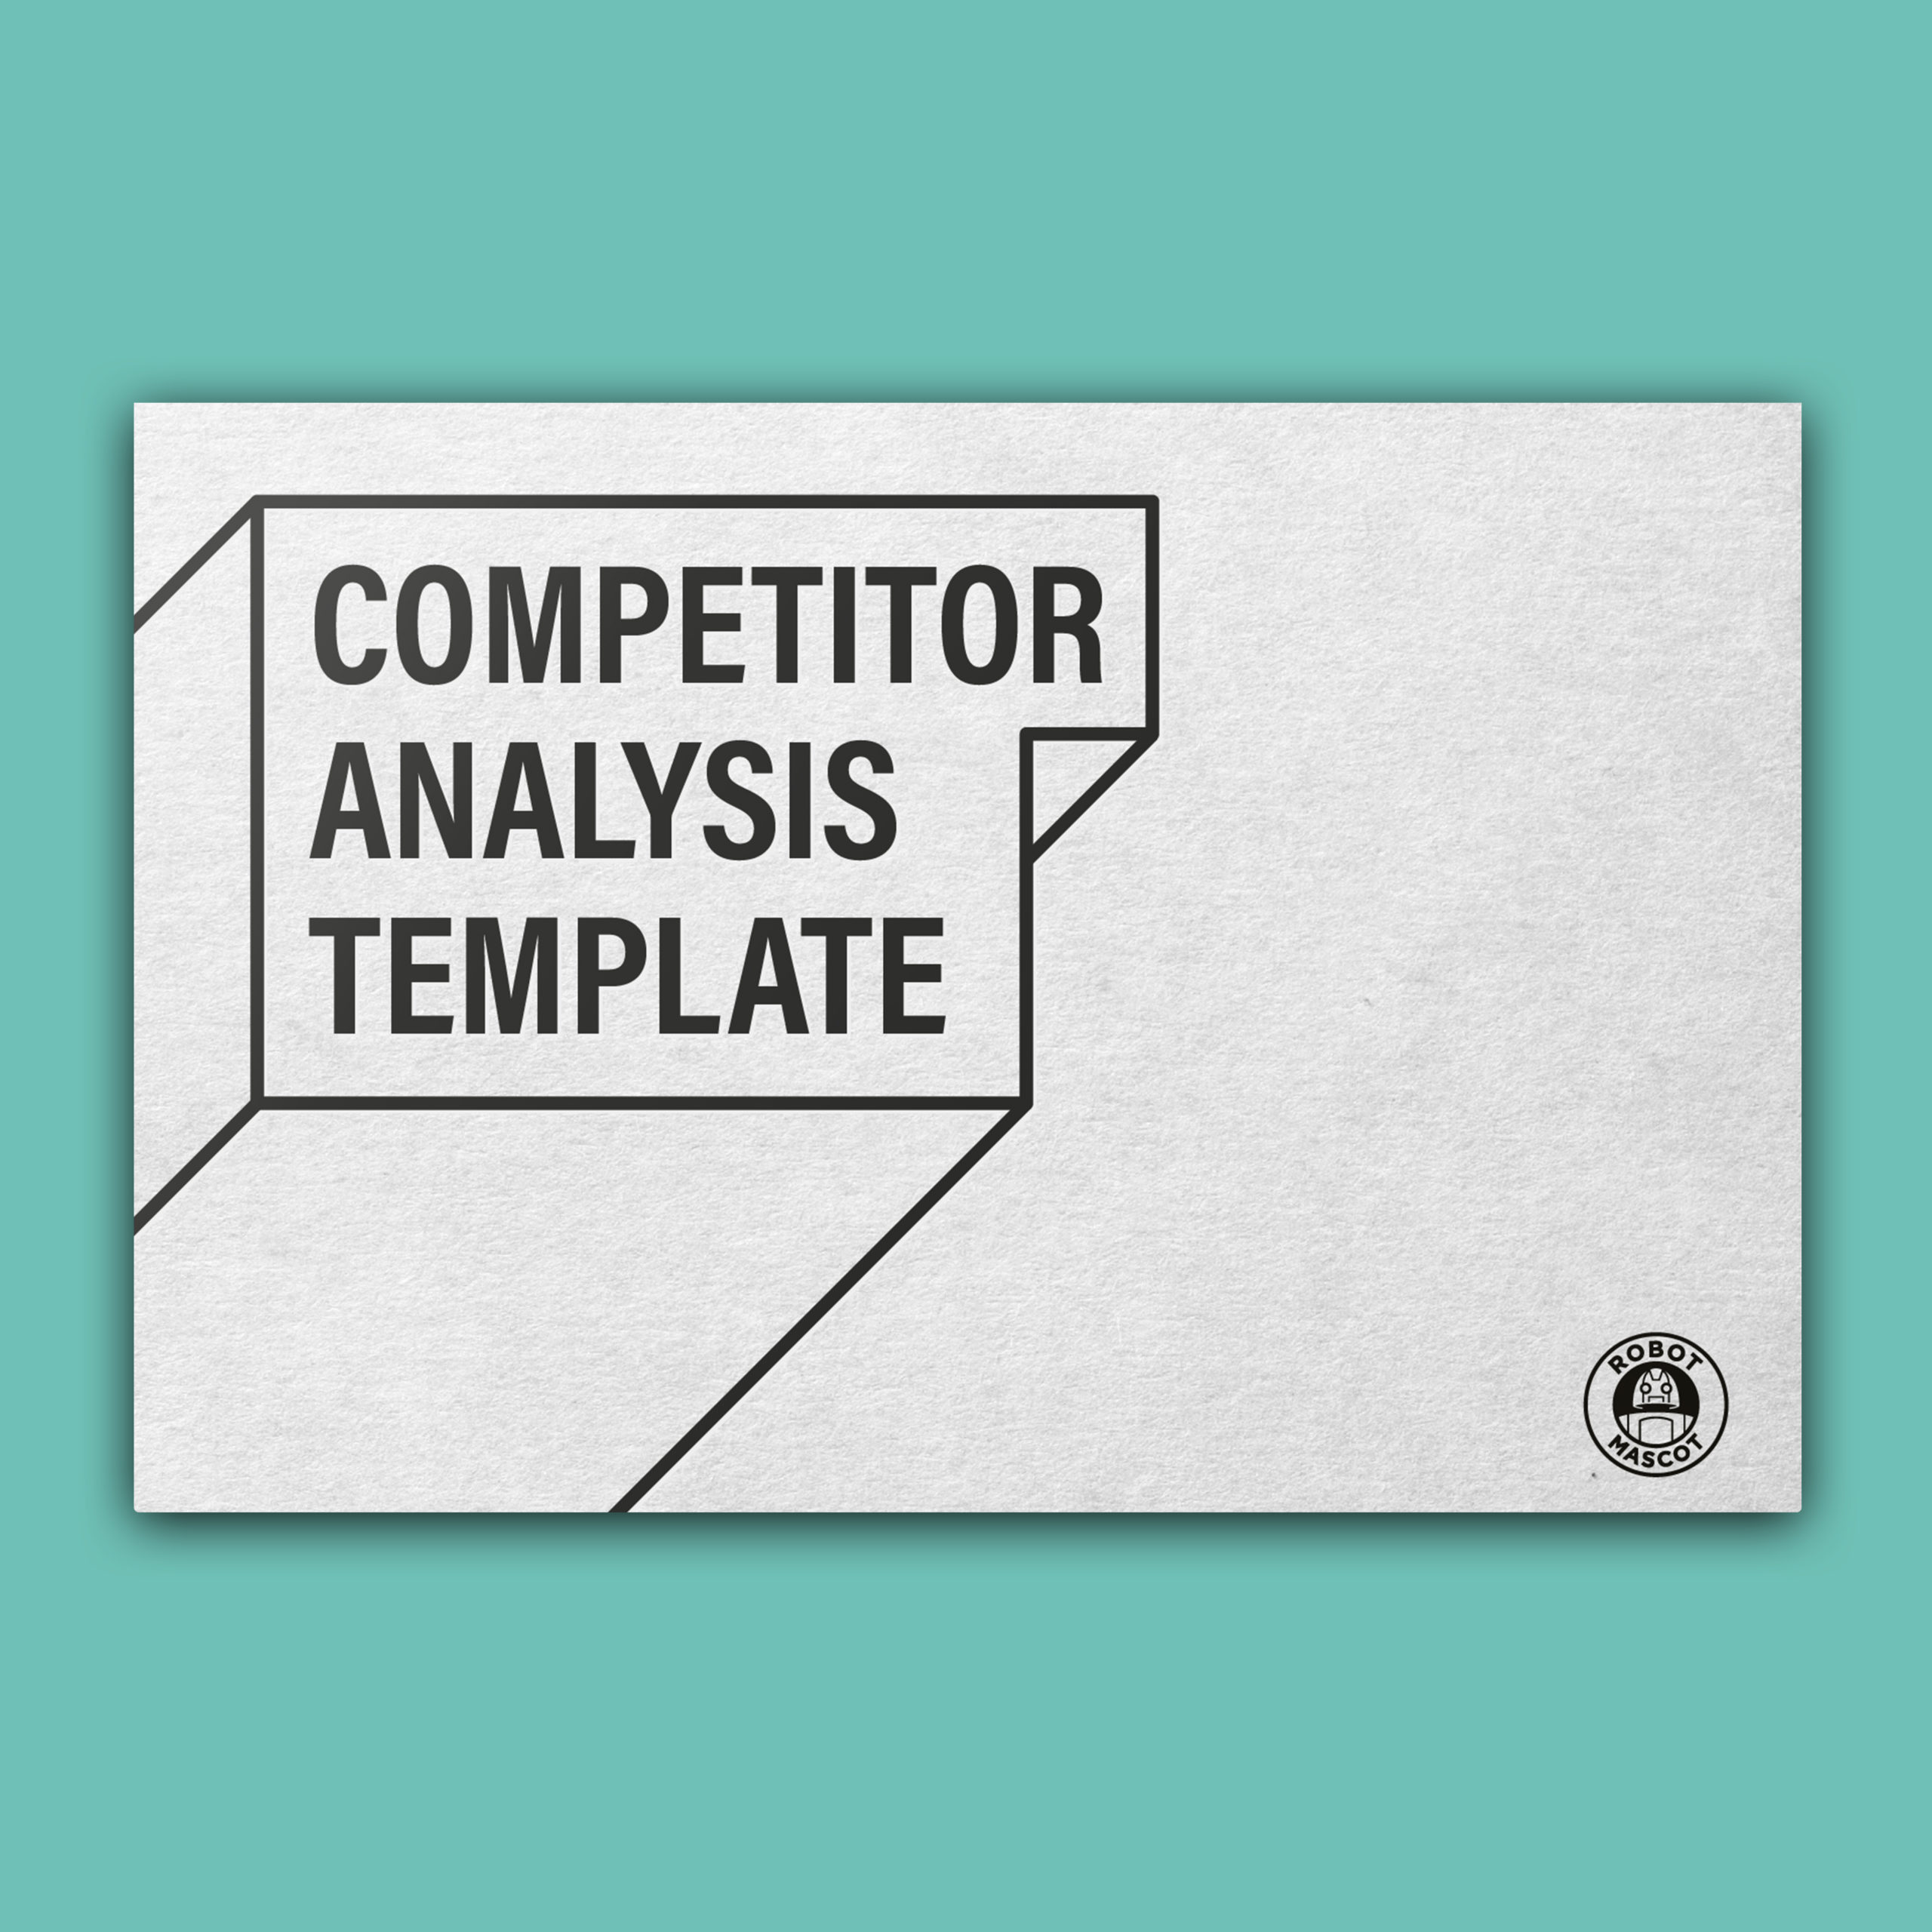 Competitor Analysis Template from www.robotmascot.co.uk